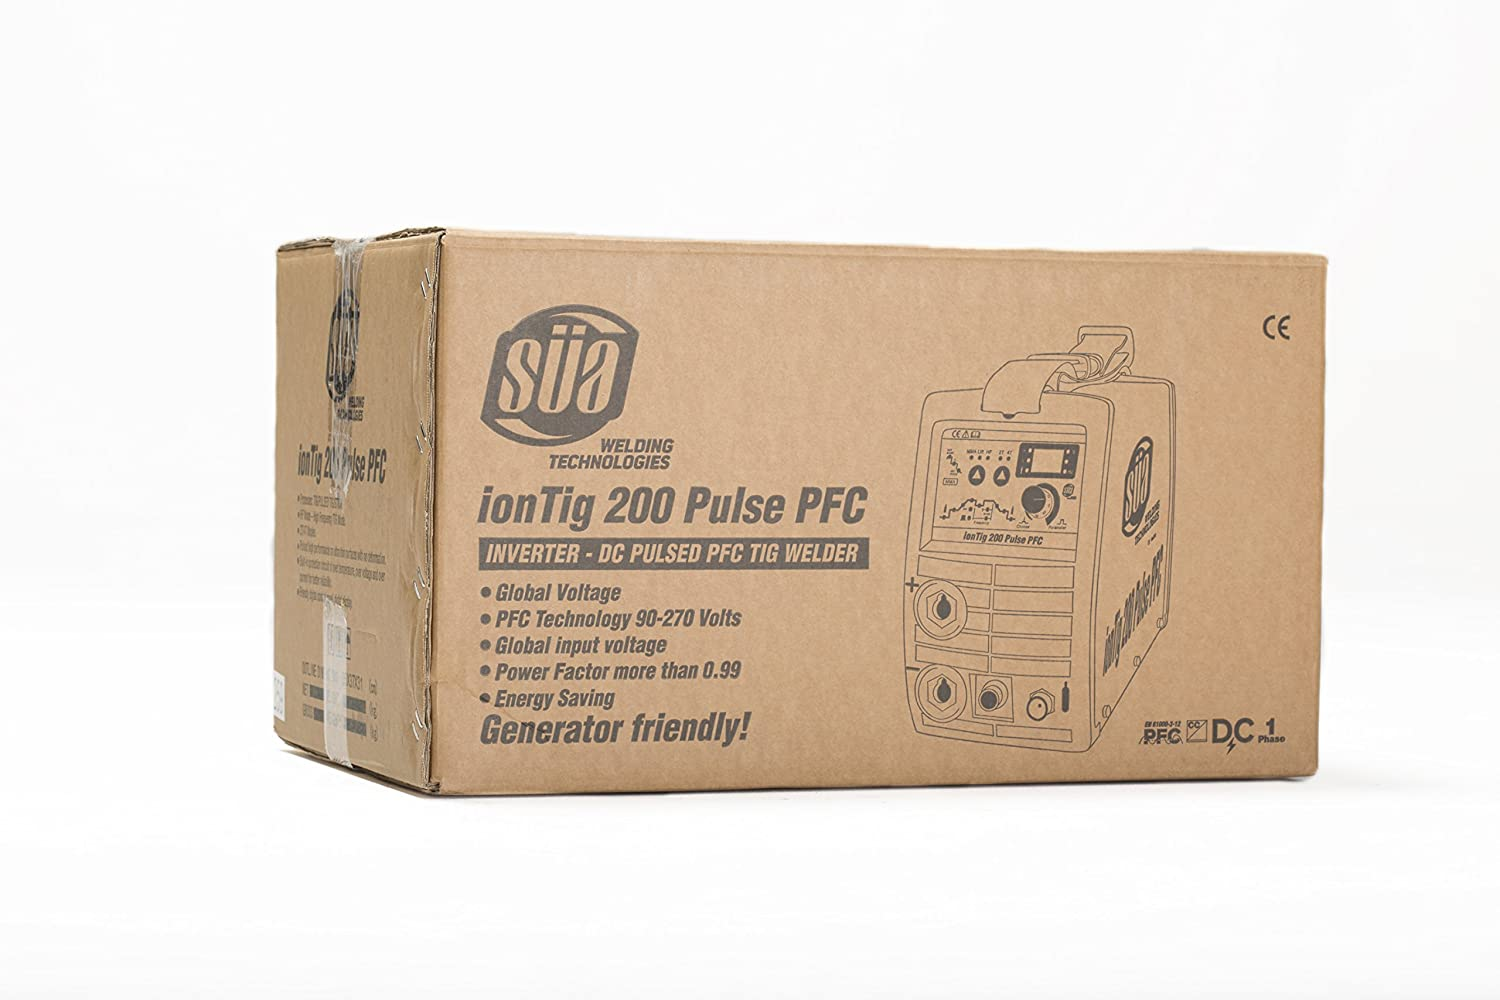 SÜA ionTig 200 Pulse PFC Inverter DC Pulsed TIG Welder - 110/220 Volts - - Amazon.com